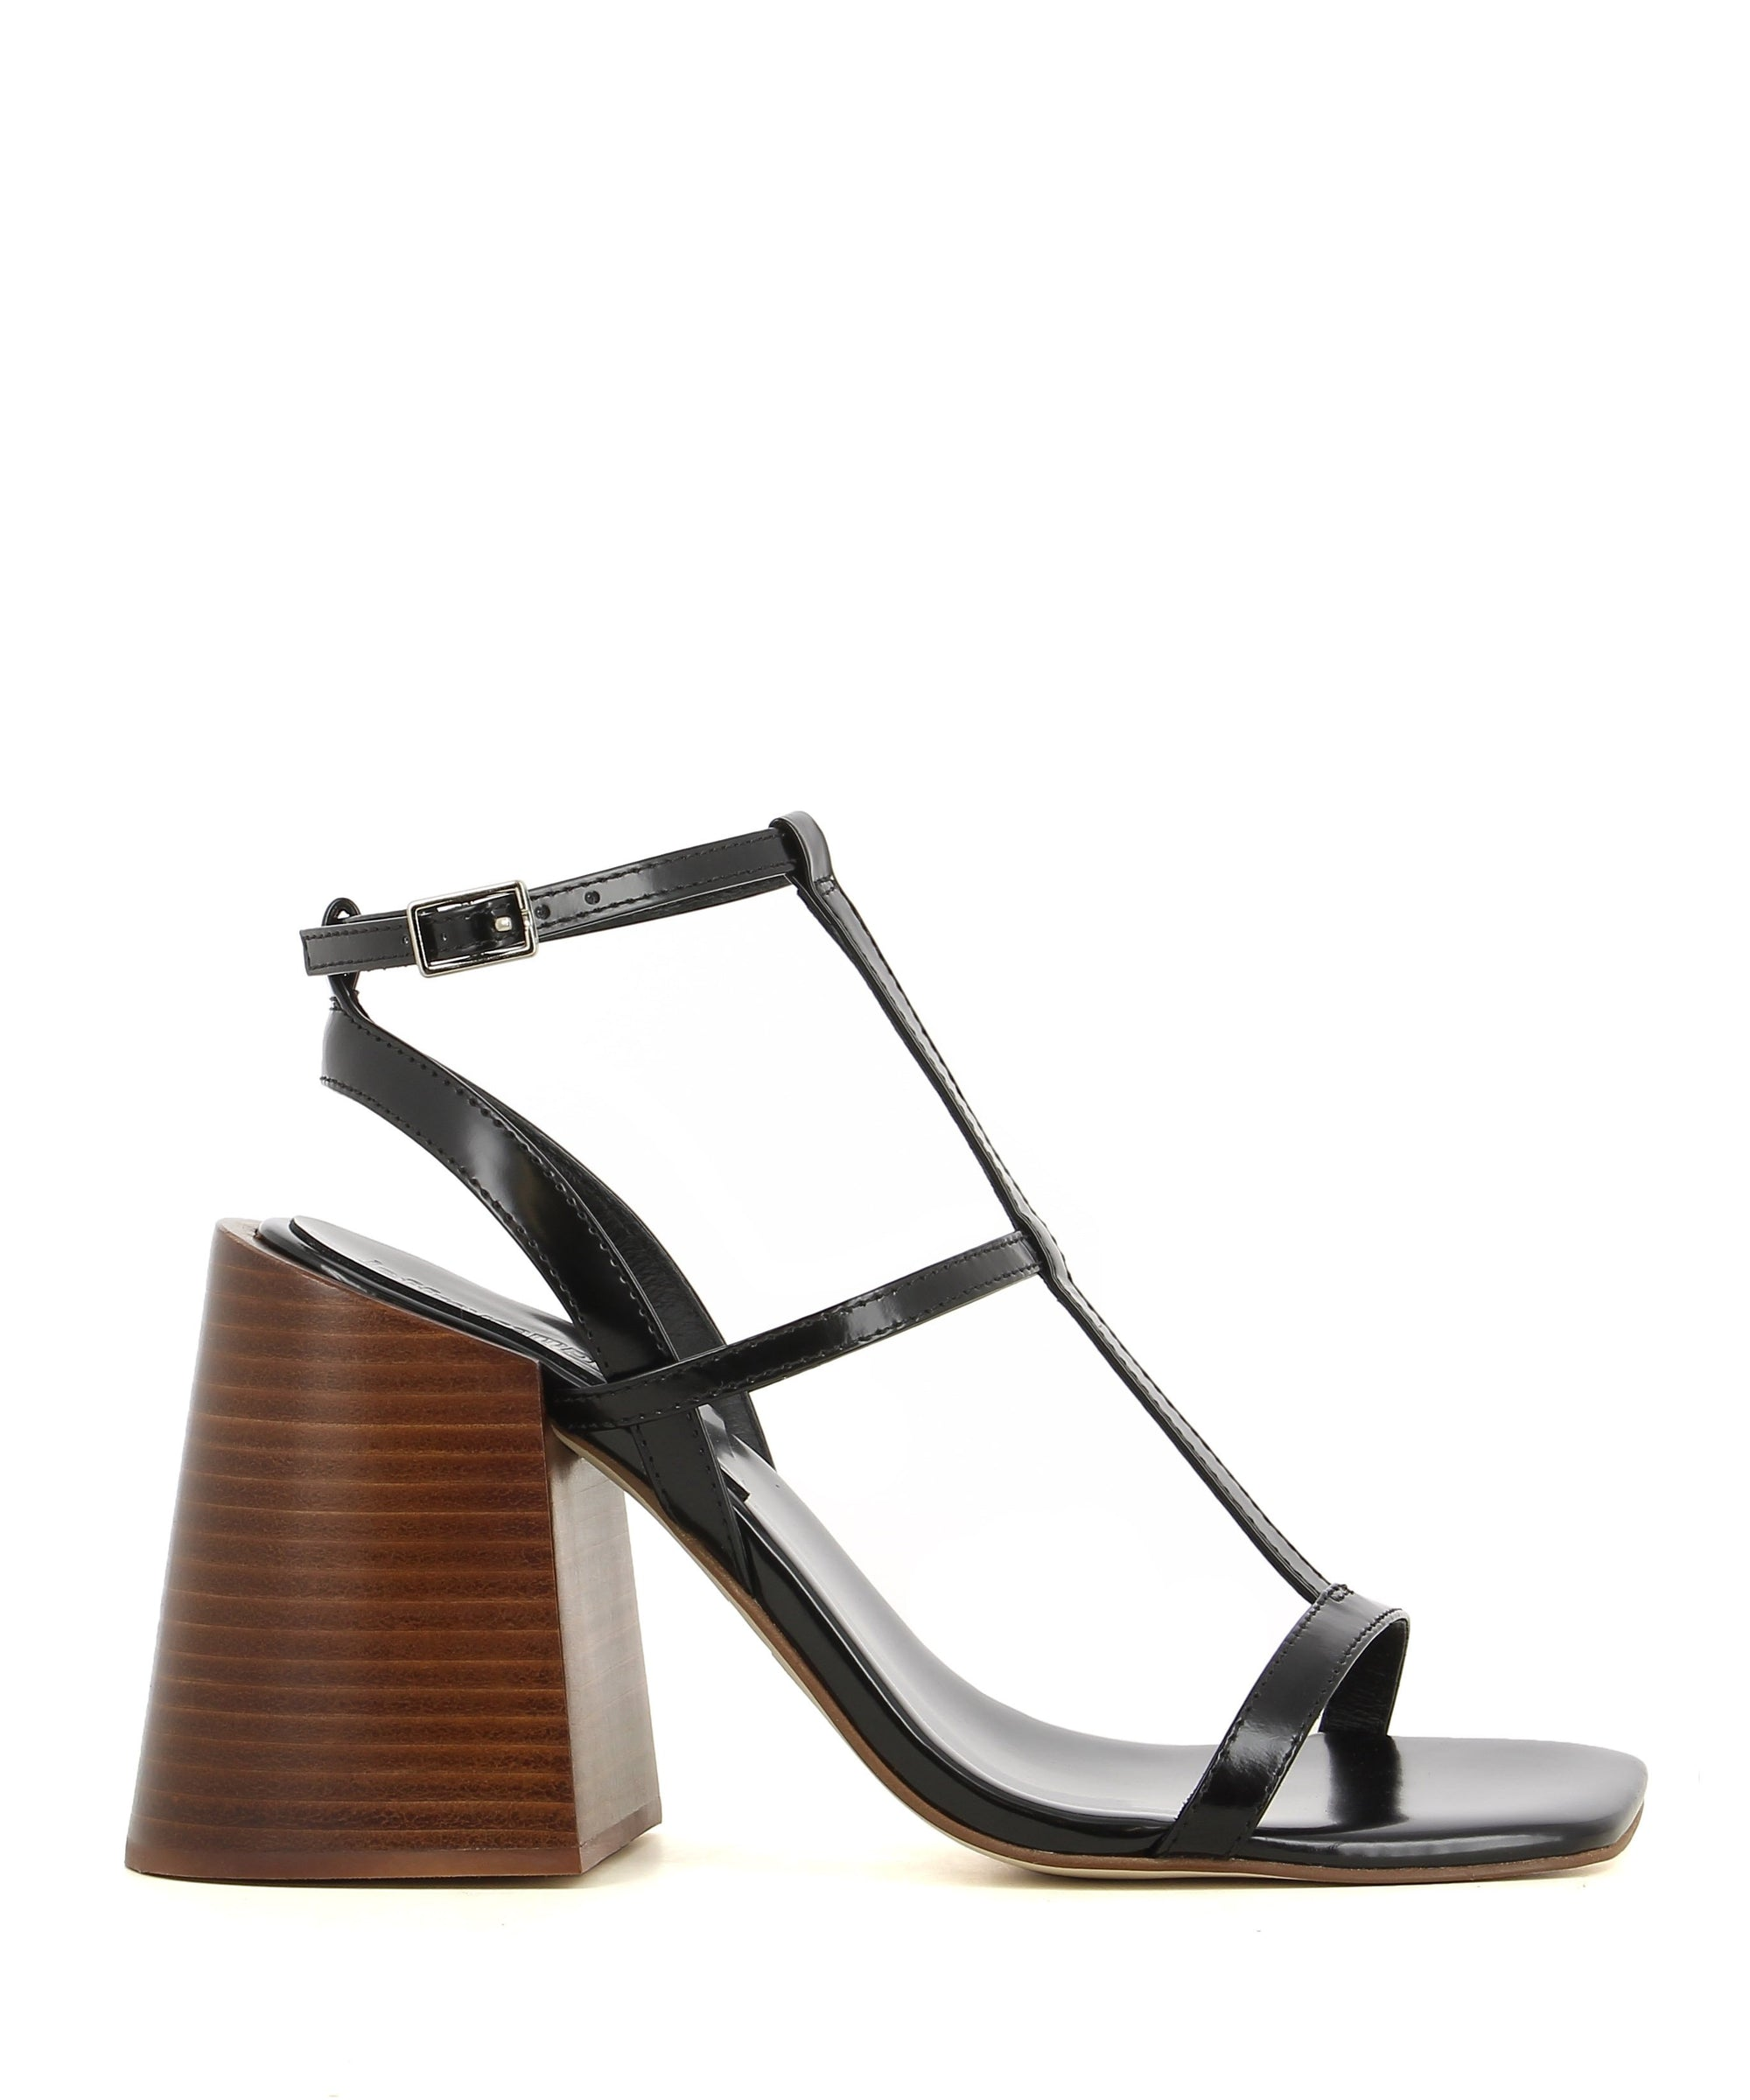 Black patent leather strappy sandals that have buckle fastening and features a high 9 cm chunky wooden heel and a square toe by Jeffrey Campbell.